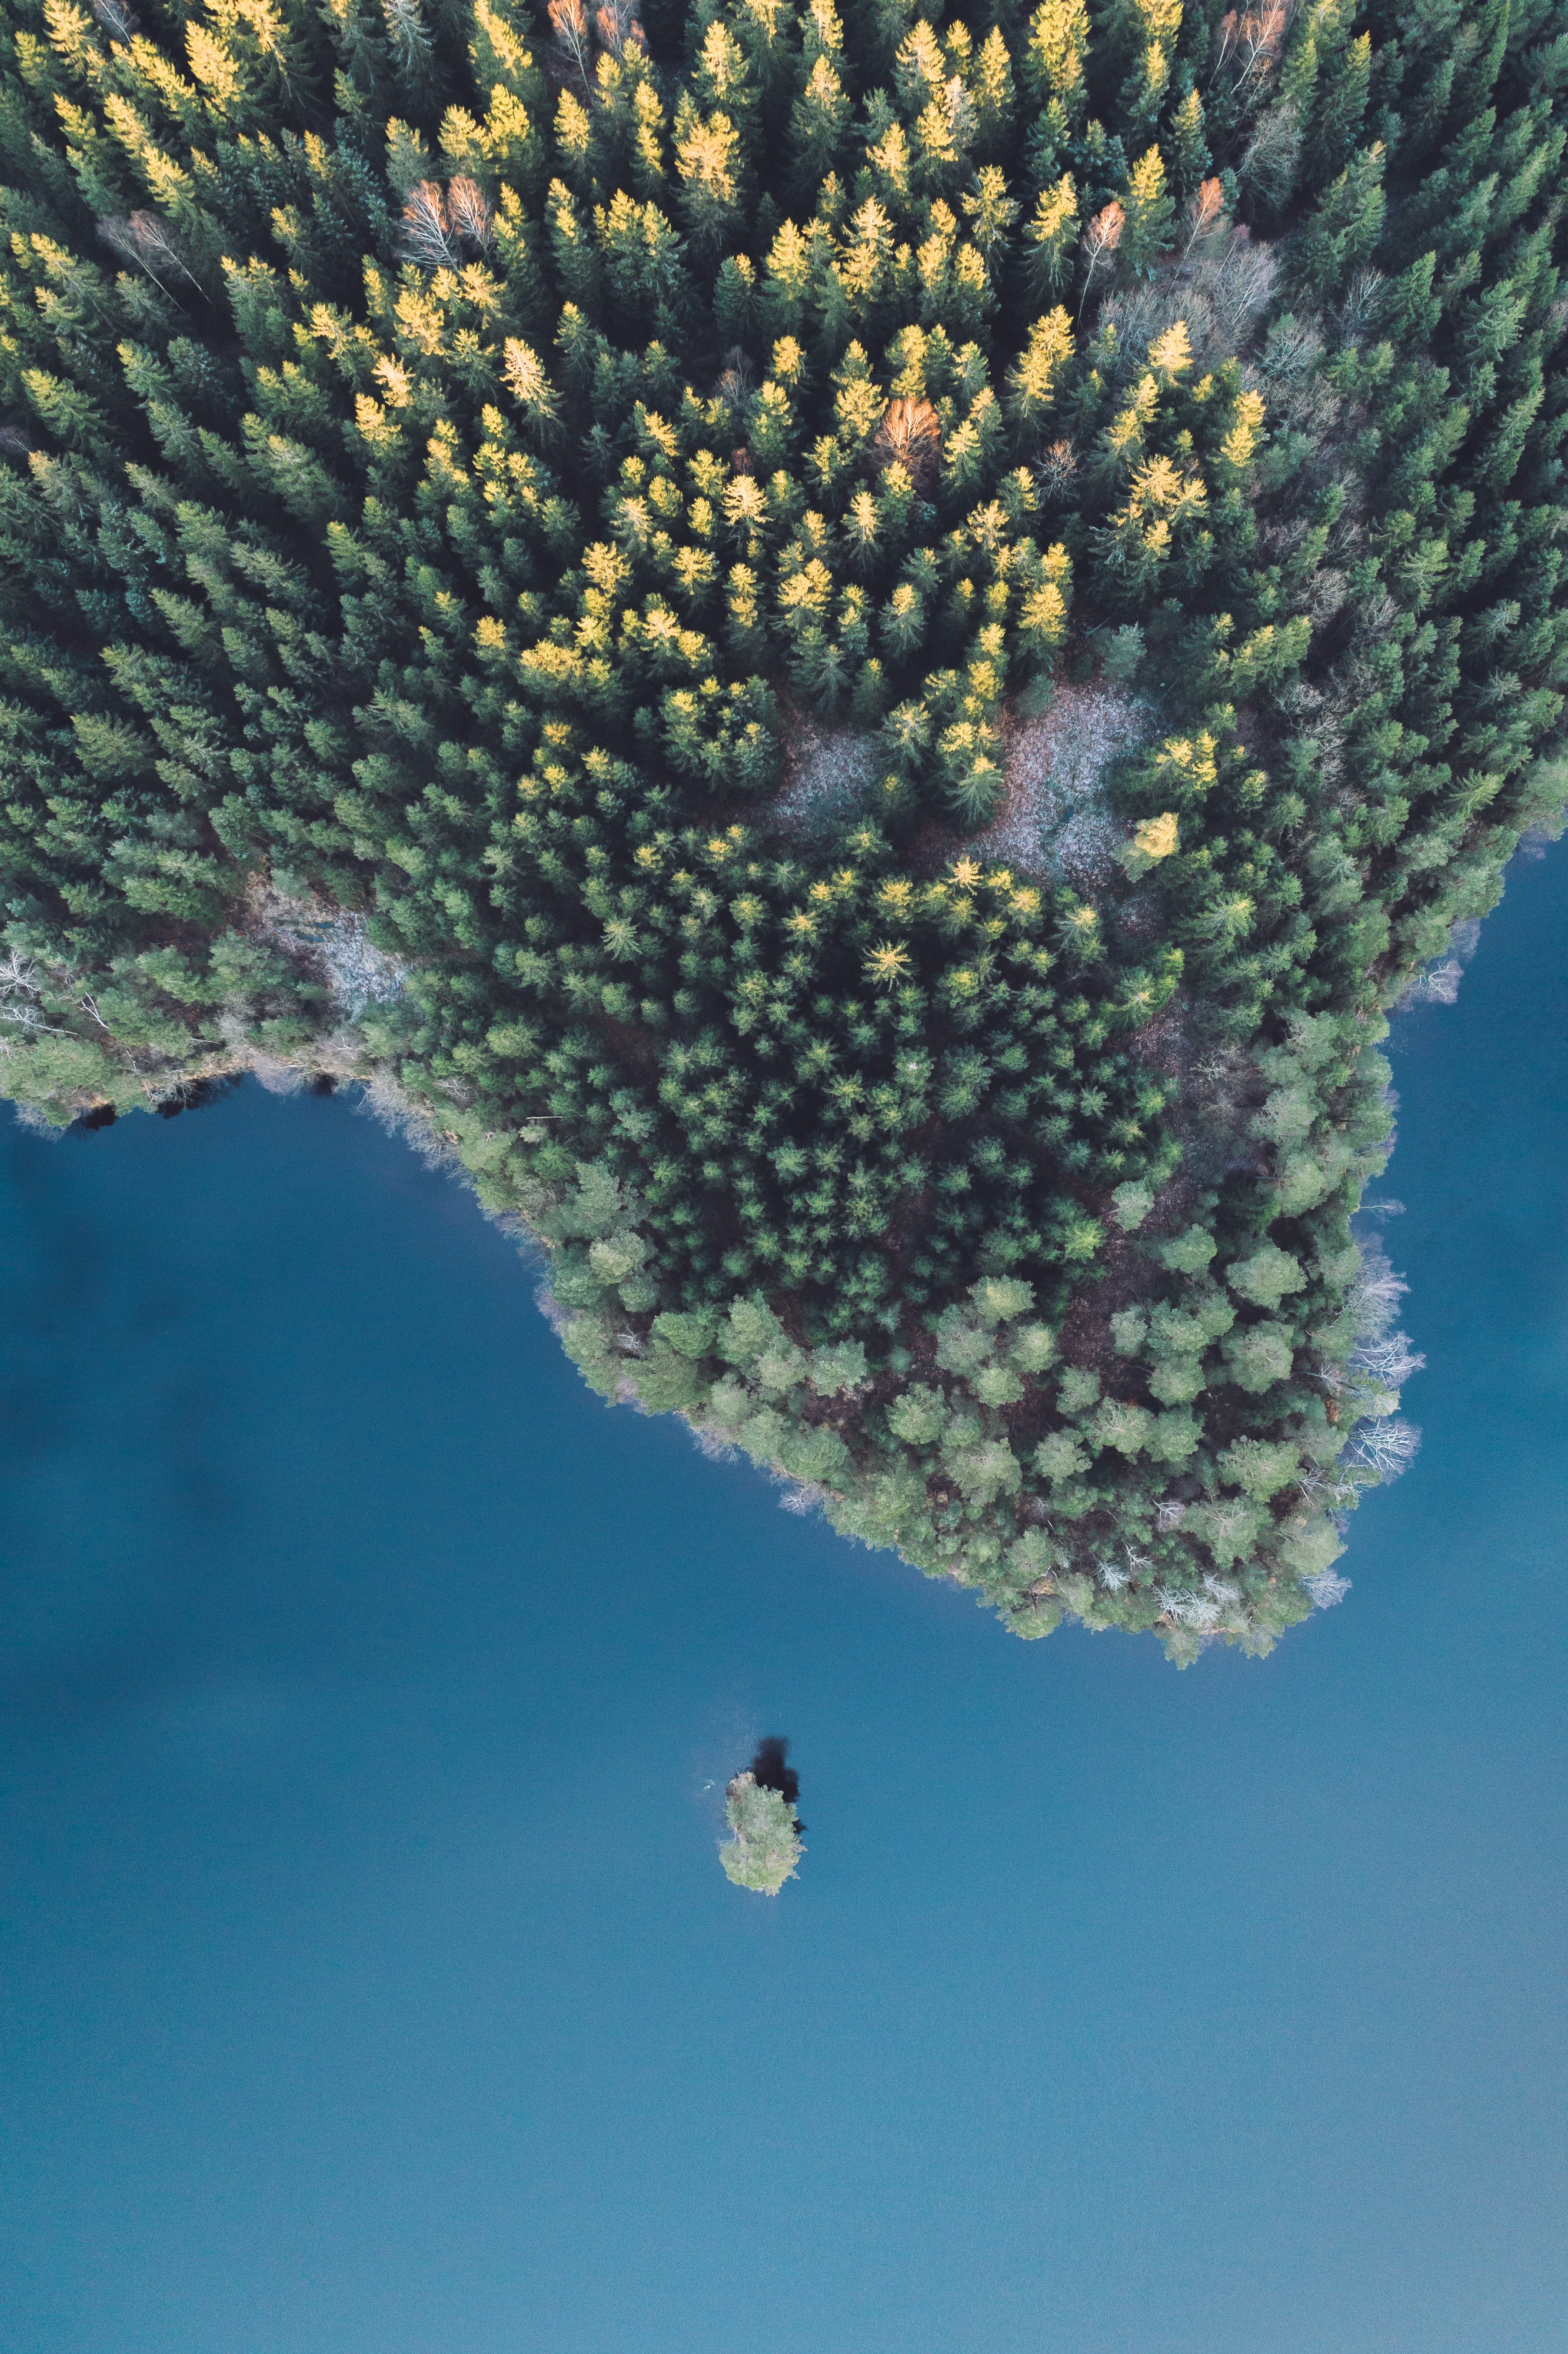 bird eye view photography of green trees beside body of water